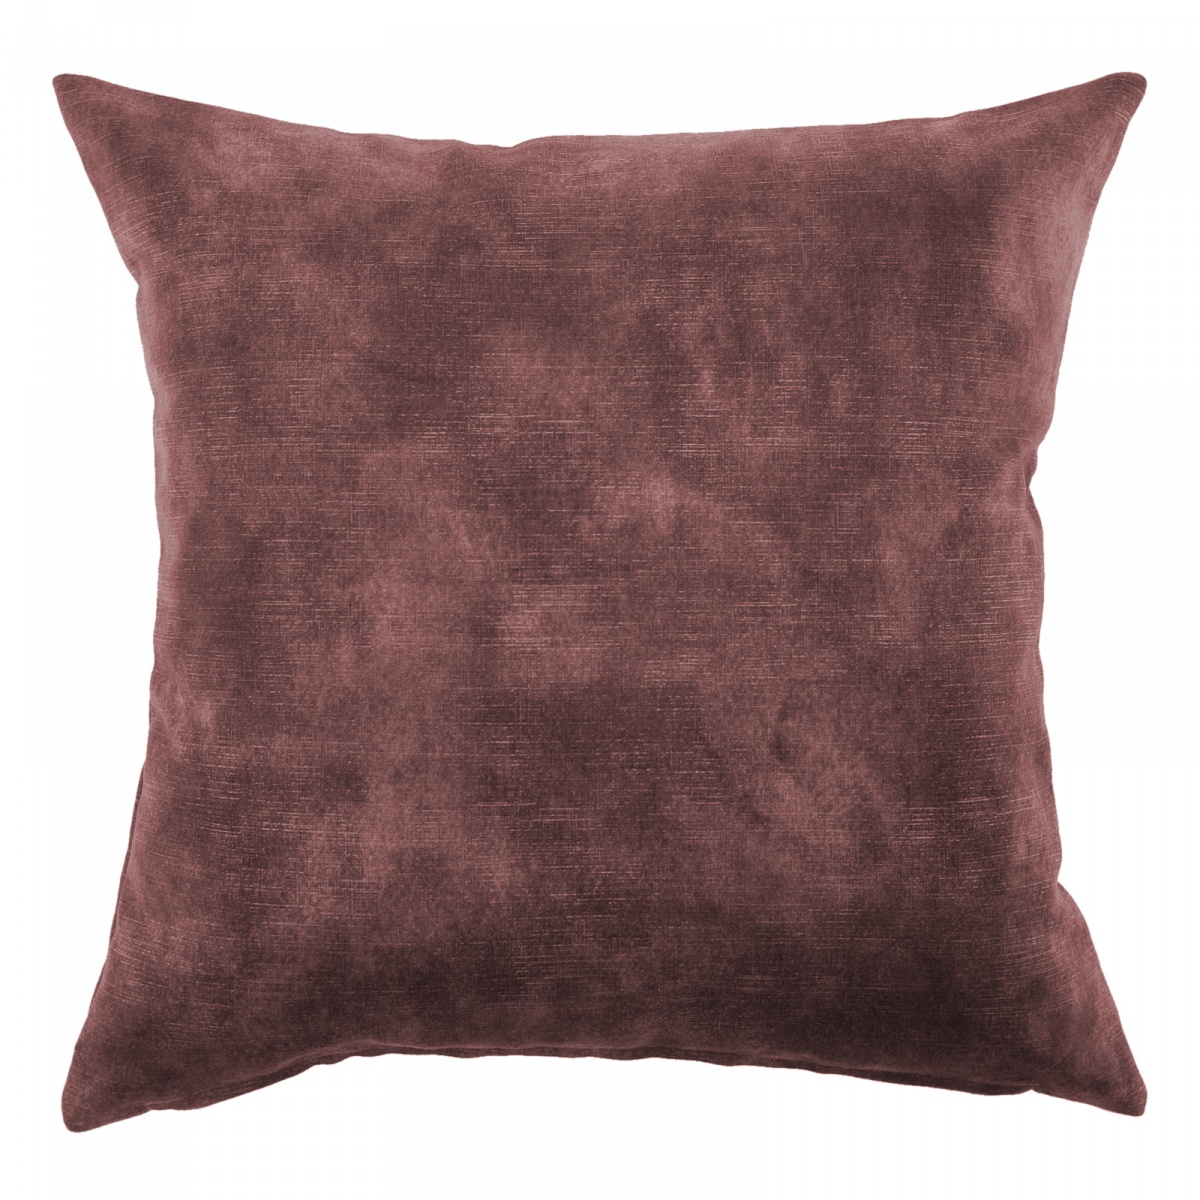 Lovely Oxblood Velvet Cushion - 45x45cm